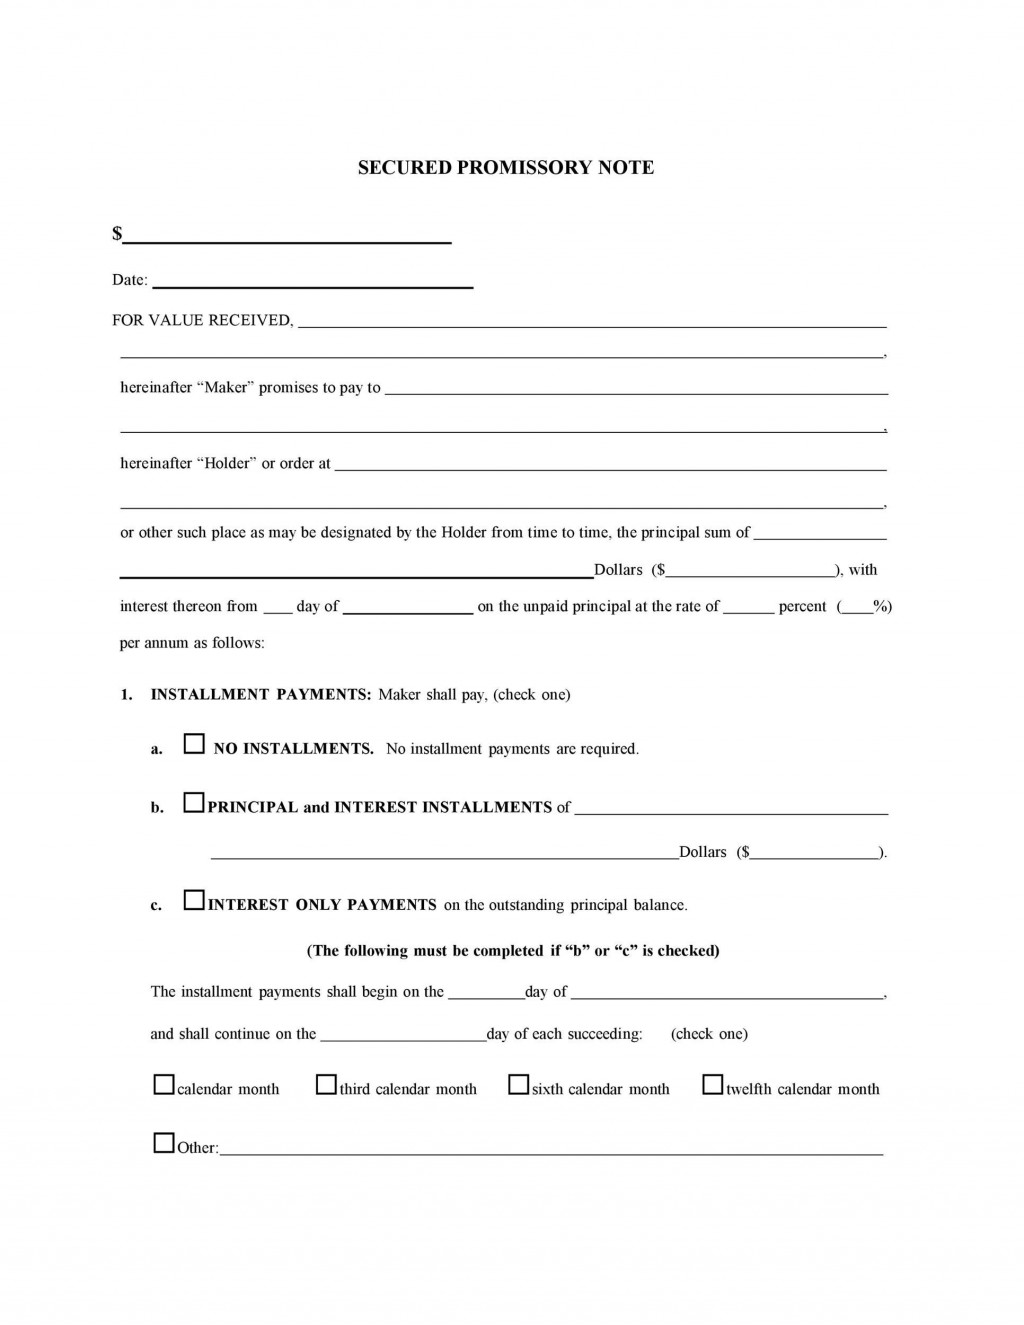 006 Unusual Blank Promissory Note Template High Definition  Form Free DownloadLarge